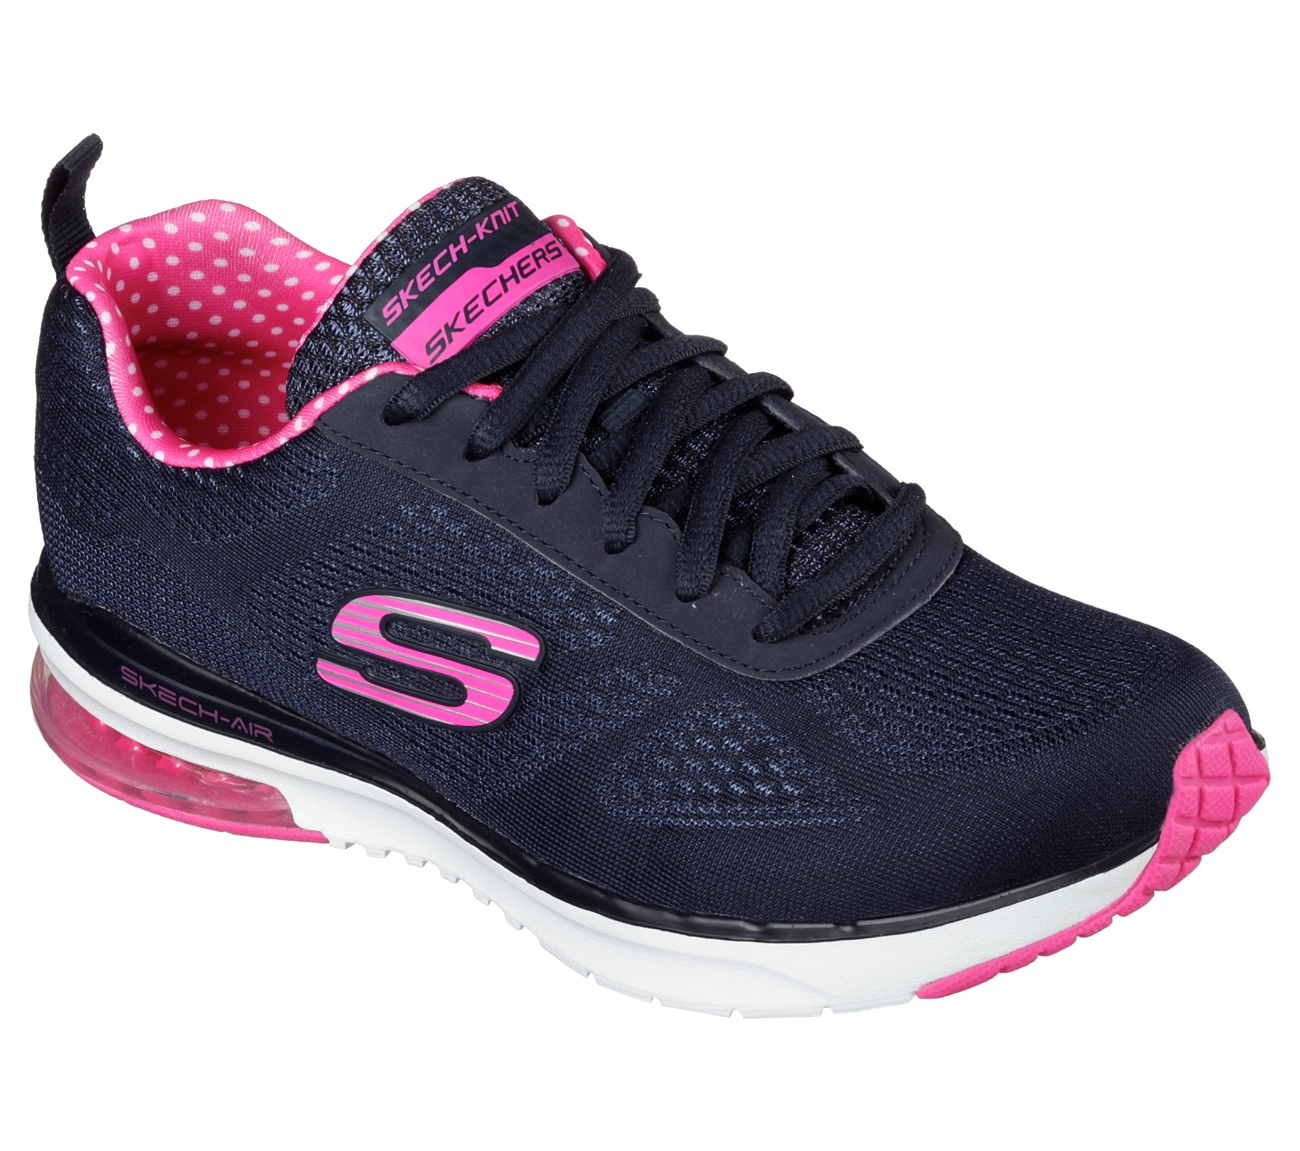 These heathered slip-on shoes are cute and comfy for everyday wear, with bungee laces for a sure fit. From Skechers.